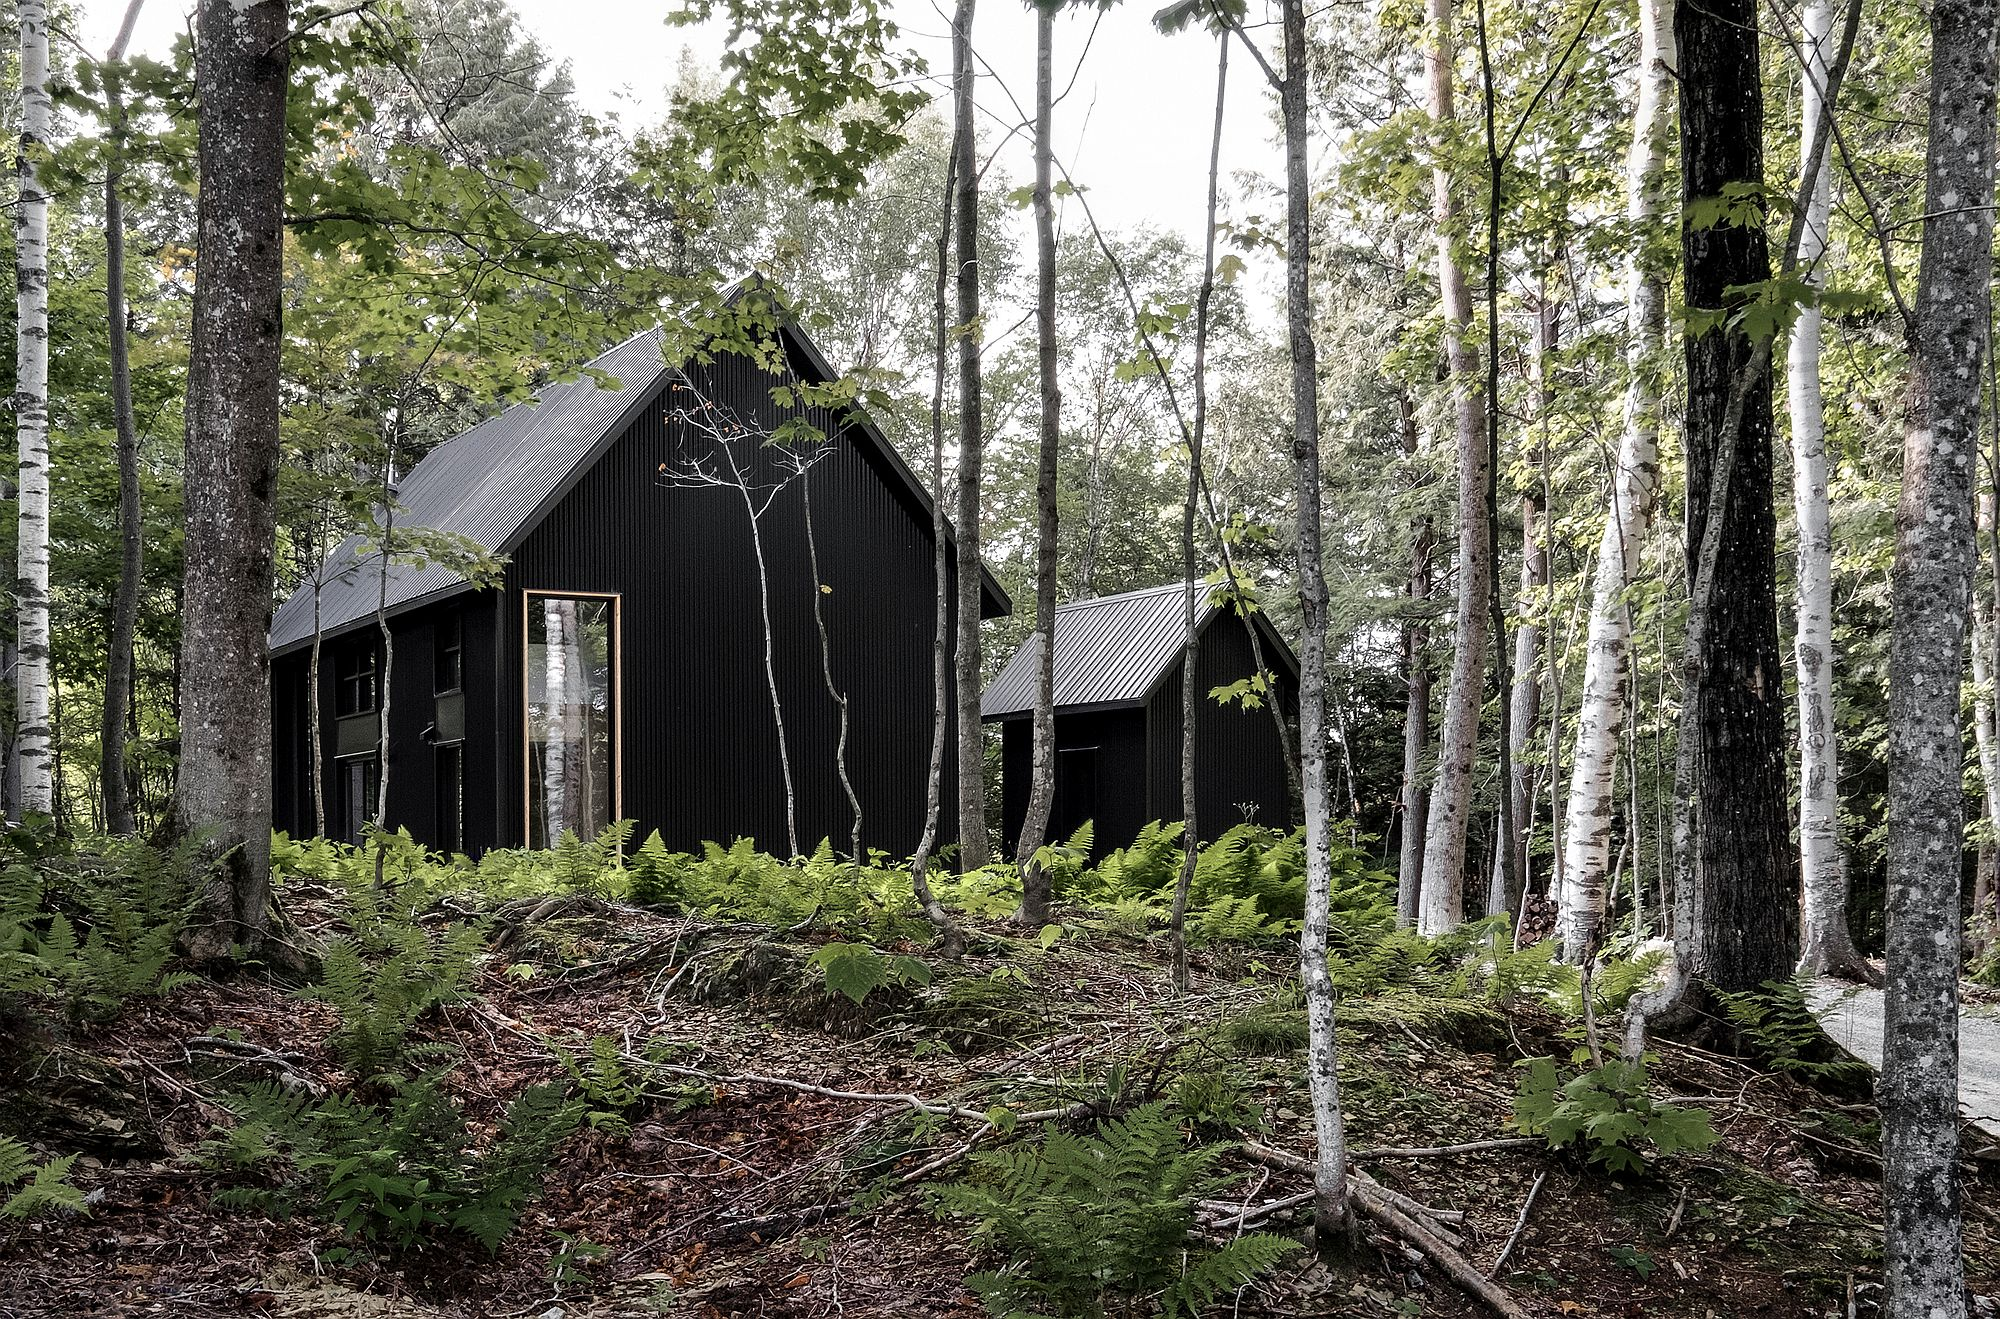 Gorgeous dark exterior of the Canadian cabin in forest